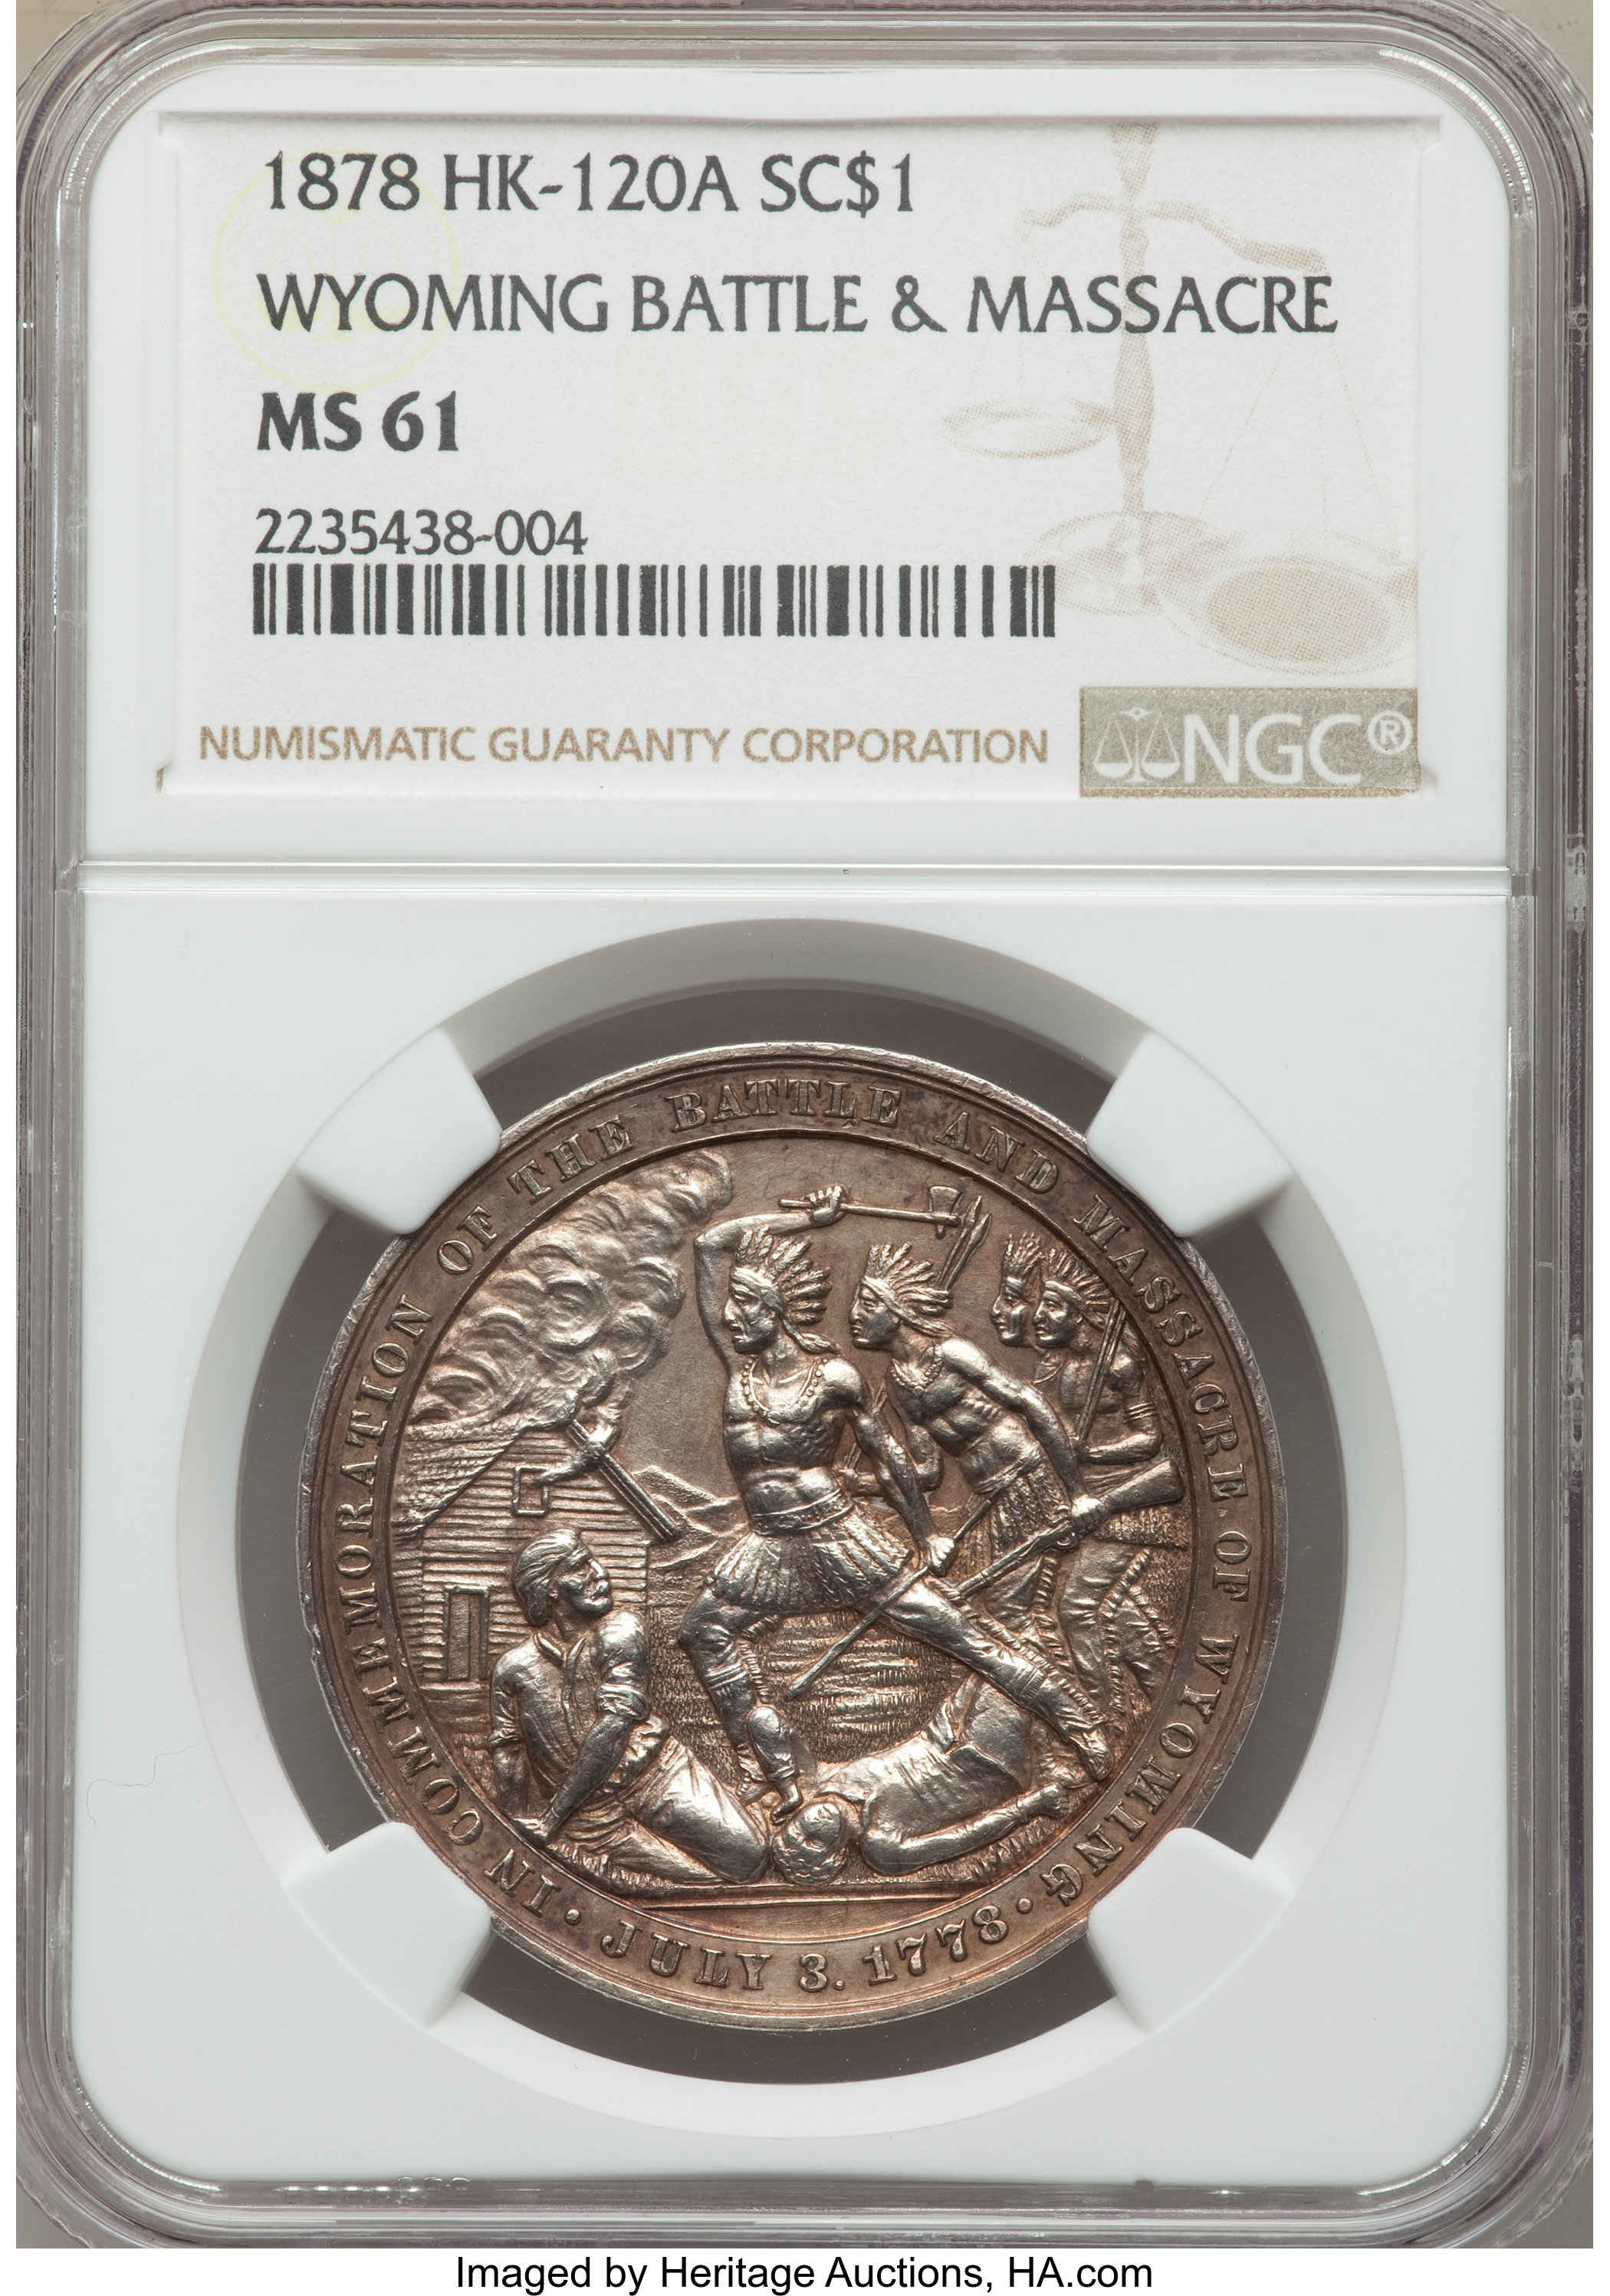 sample image for 1878 Wyoming Battle, Silver SC$1 MS (HK-120a)